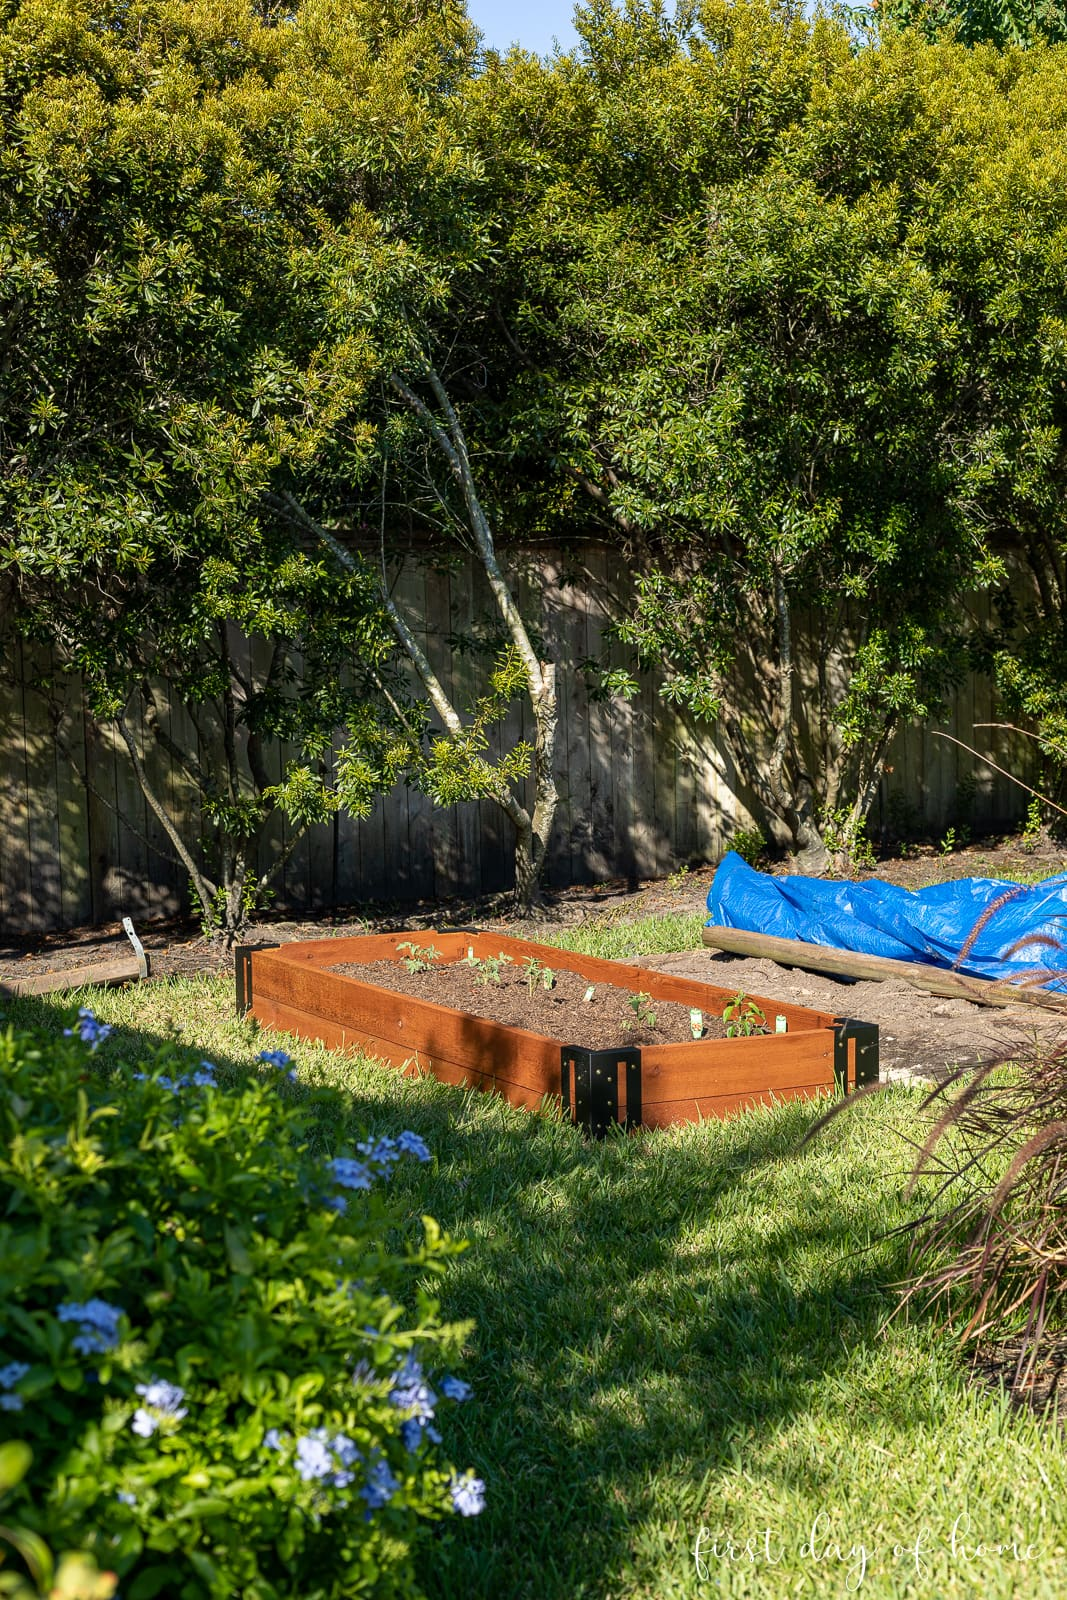 Raised bed garden prepared to plant fall vegetables in Houston, Texas